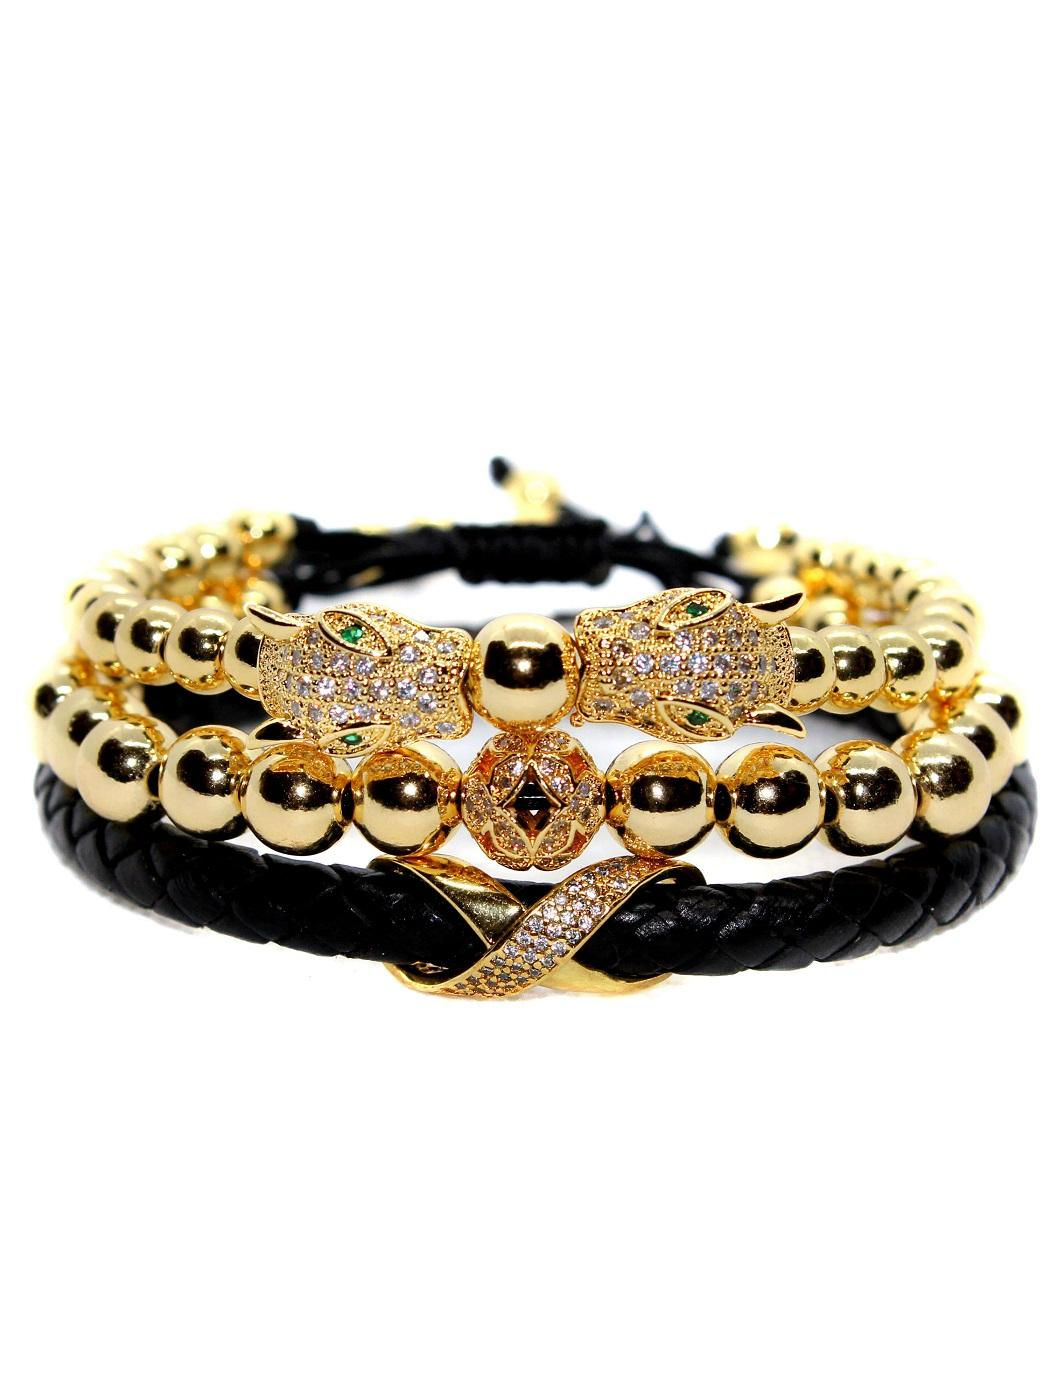 New York, Los Angeles, Chicago, Houston, Phoenix, Philadelphia, San Antonio, San Diego, Dallas, San Jose, Austin, Jacksonville, Fort Worth, Columbus, Charlotte, San Francisco, Indianapolis, Seattle, Denver, Washington,White Gold Diamond Bracelet Womens, 14K Yellow Gold Diamond Tennis Bracelet, Gents Bracelet Gold, Gold And Diamond Bangle Bracelet, Mens White Gold Bangle, Mens Gold Wrist Bracelet, Mens Gold Bracelets Amazon, Gold And Diamond Bracelet Womens, White Gold Tennis Bracelet Womens, Gold And Silver Bracelet Mens, Best Mens Gold Bracelets, Womens White Gold Diamond Bracelet, Panther Bracelet Gold JewelryPanther Bracelet Gold Jewelry